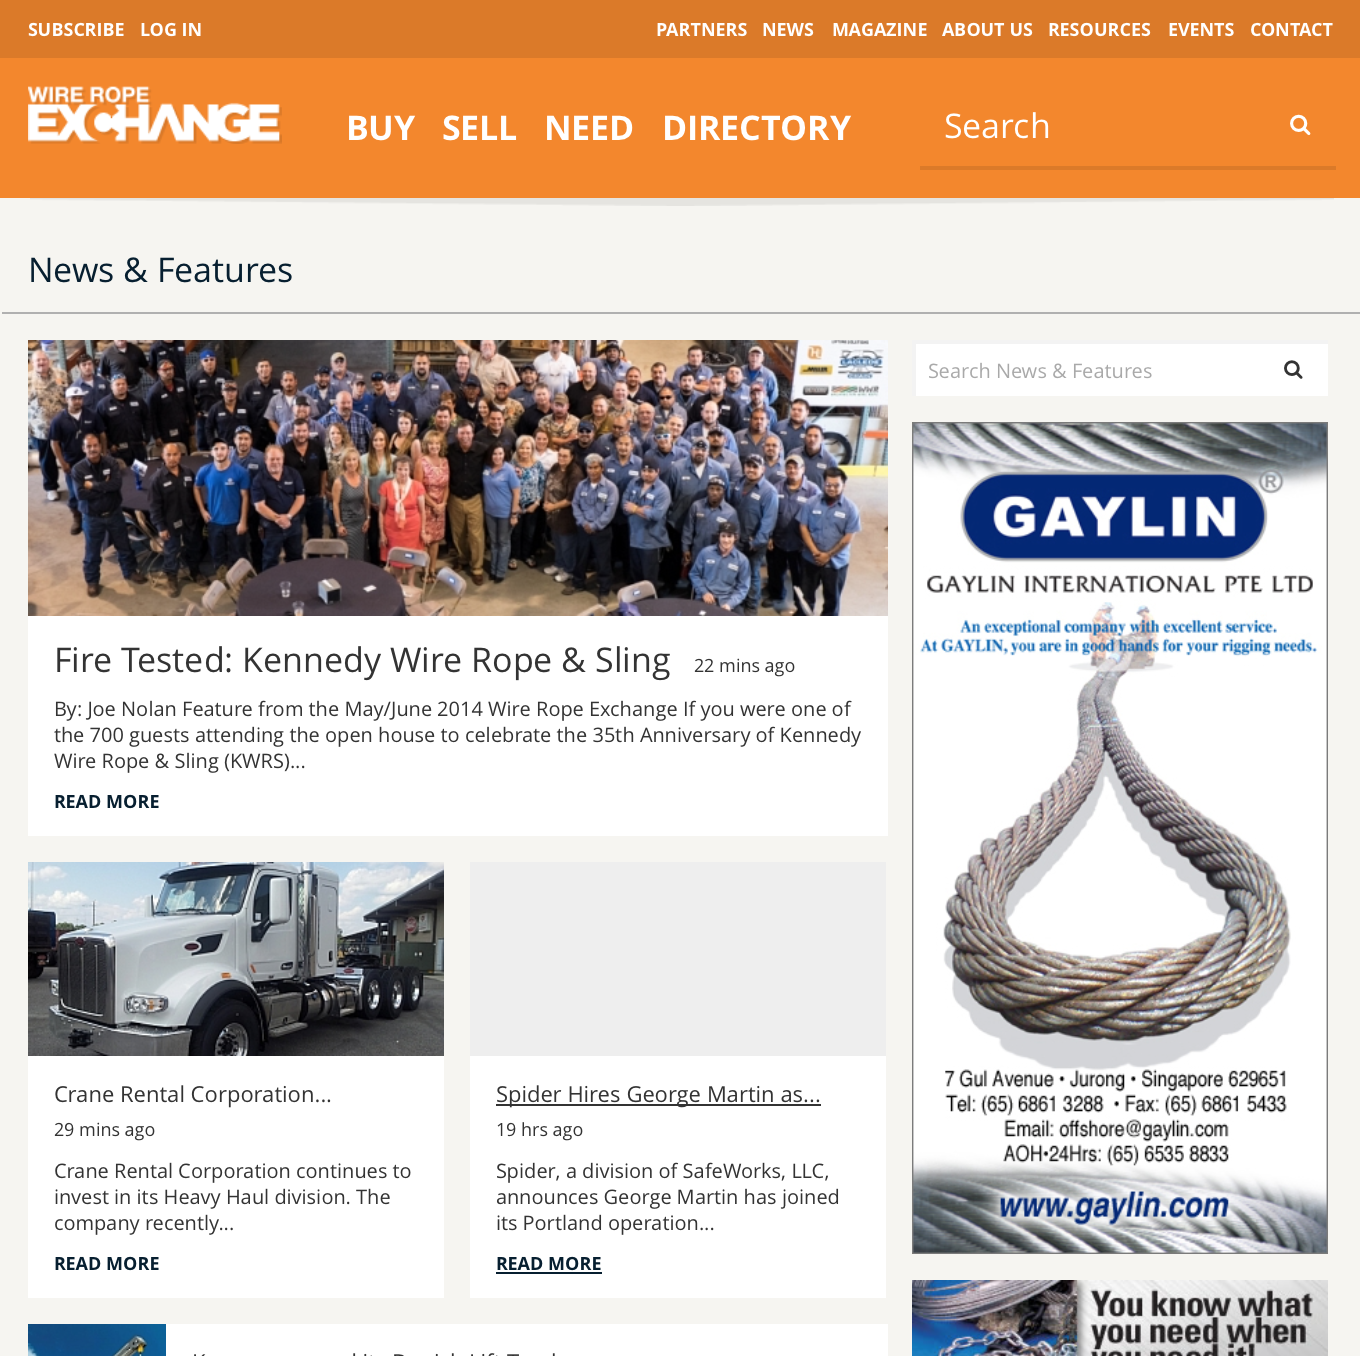 THE WIRE | THE ONLINE EXCHANGE FOR THE WIRE ROPE EXCHANGE.